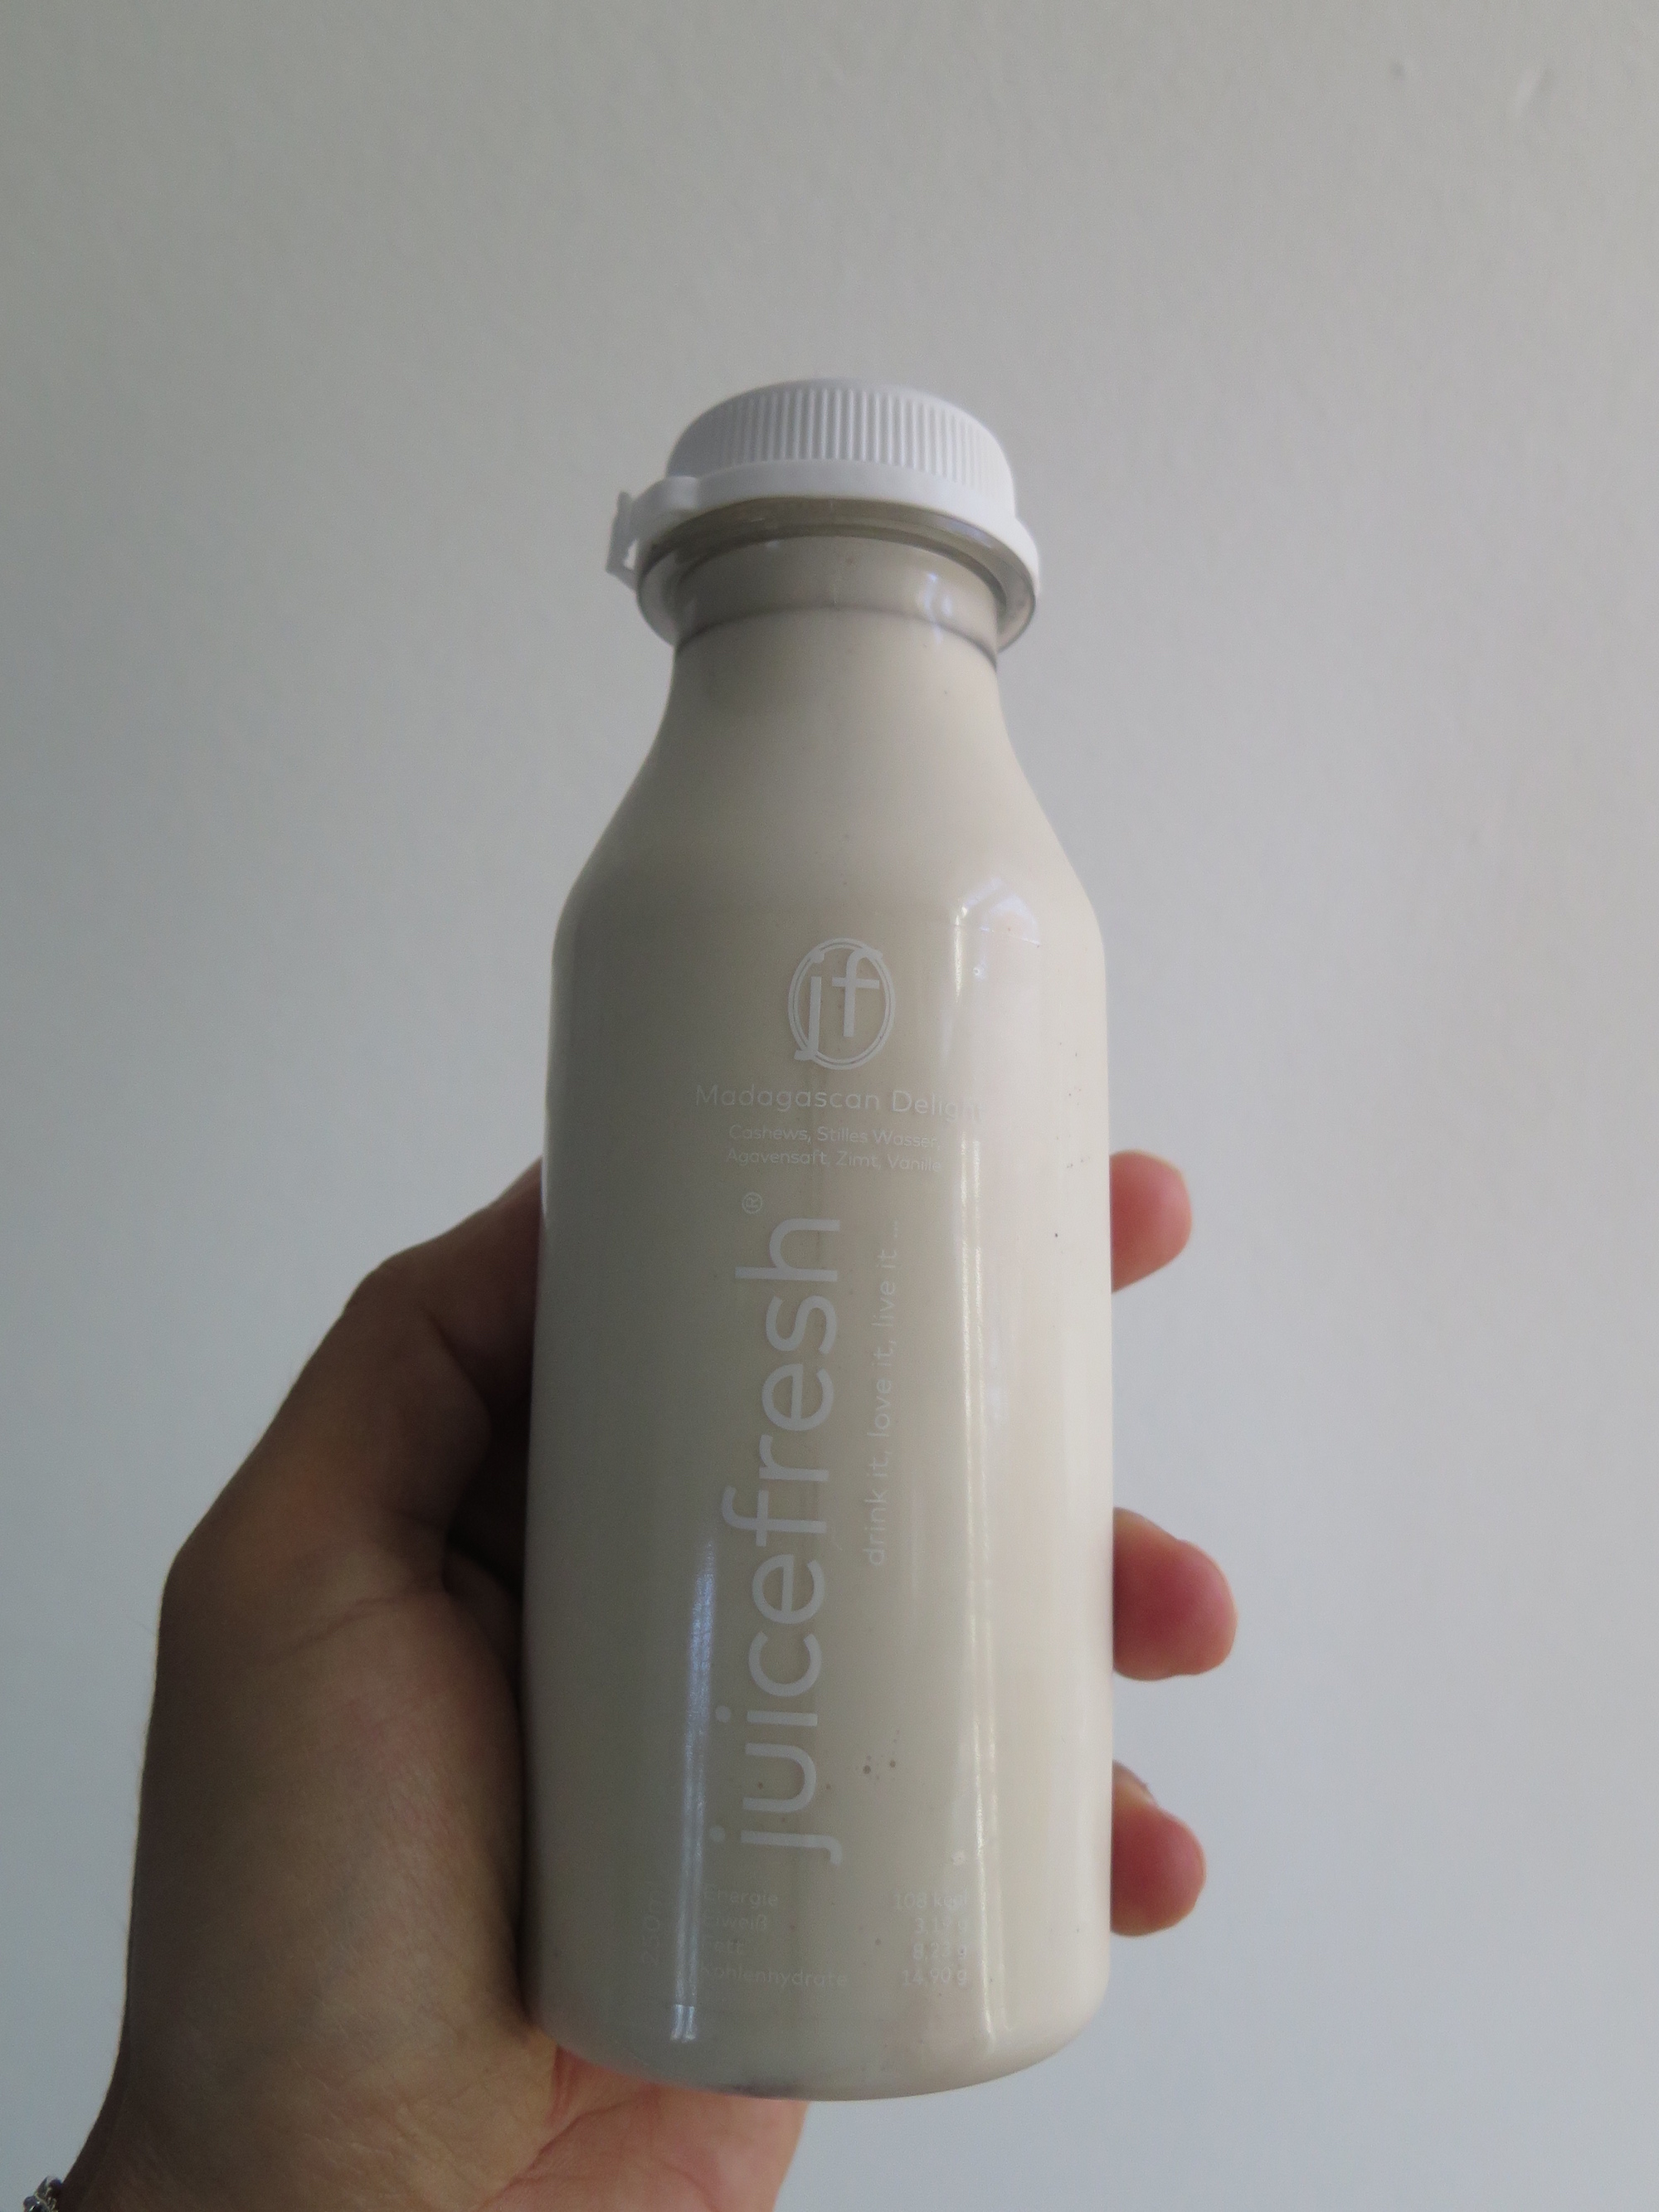 Die superleckere Nussmilch-Madagaskar Delight